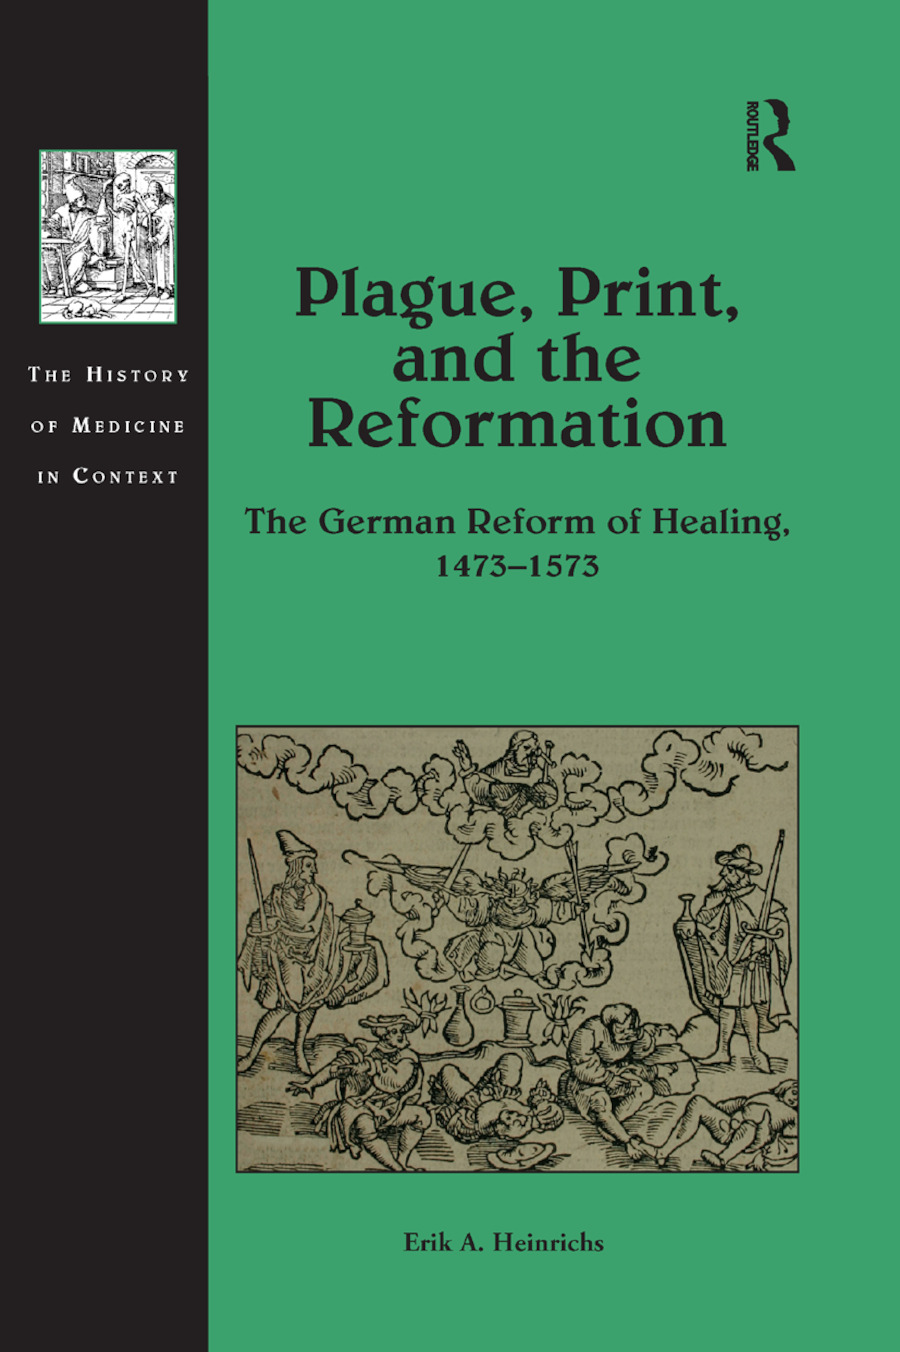 Plague, Print, and the Reformation: The German Reform of Healing, 1473�1573 book cover